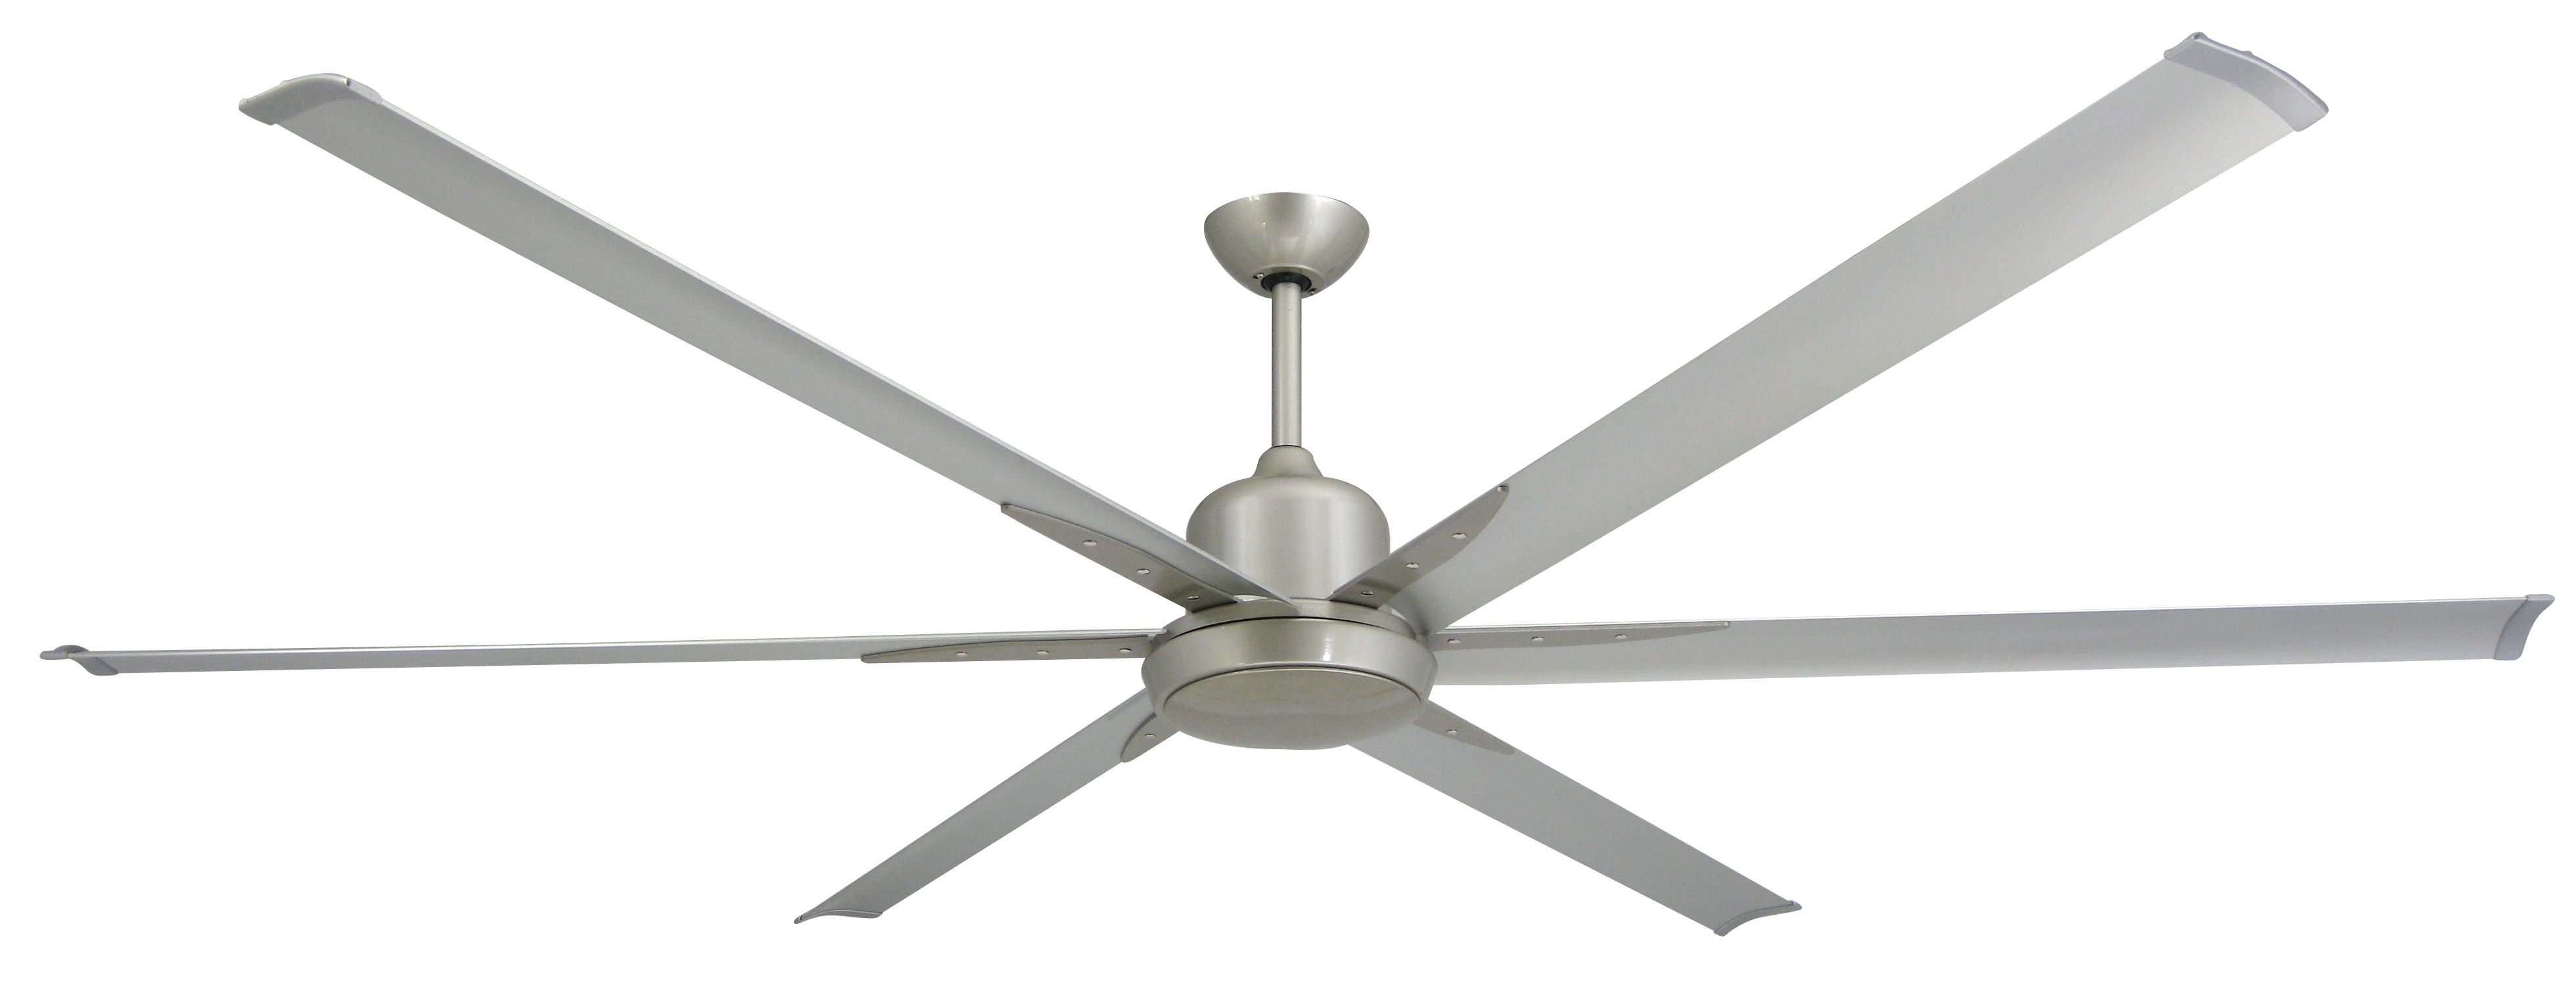 TroposAir Titan Brushed Nickel Industrial Ceiling Fan with 84